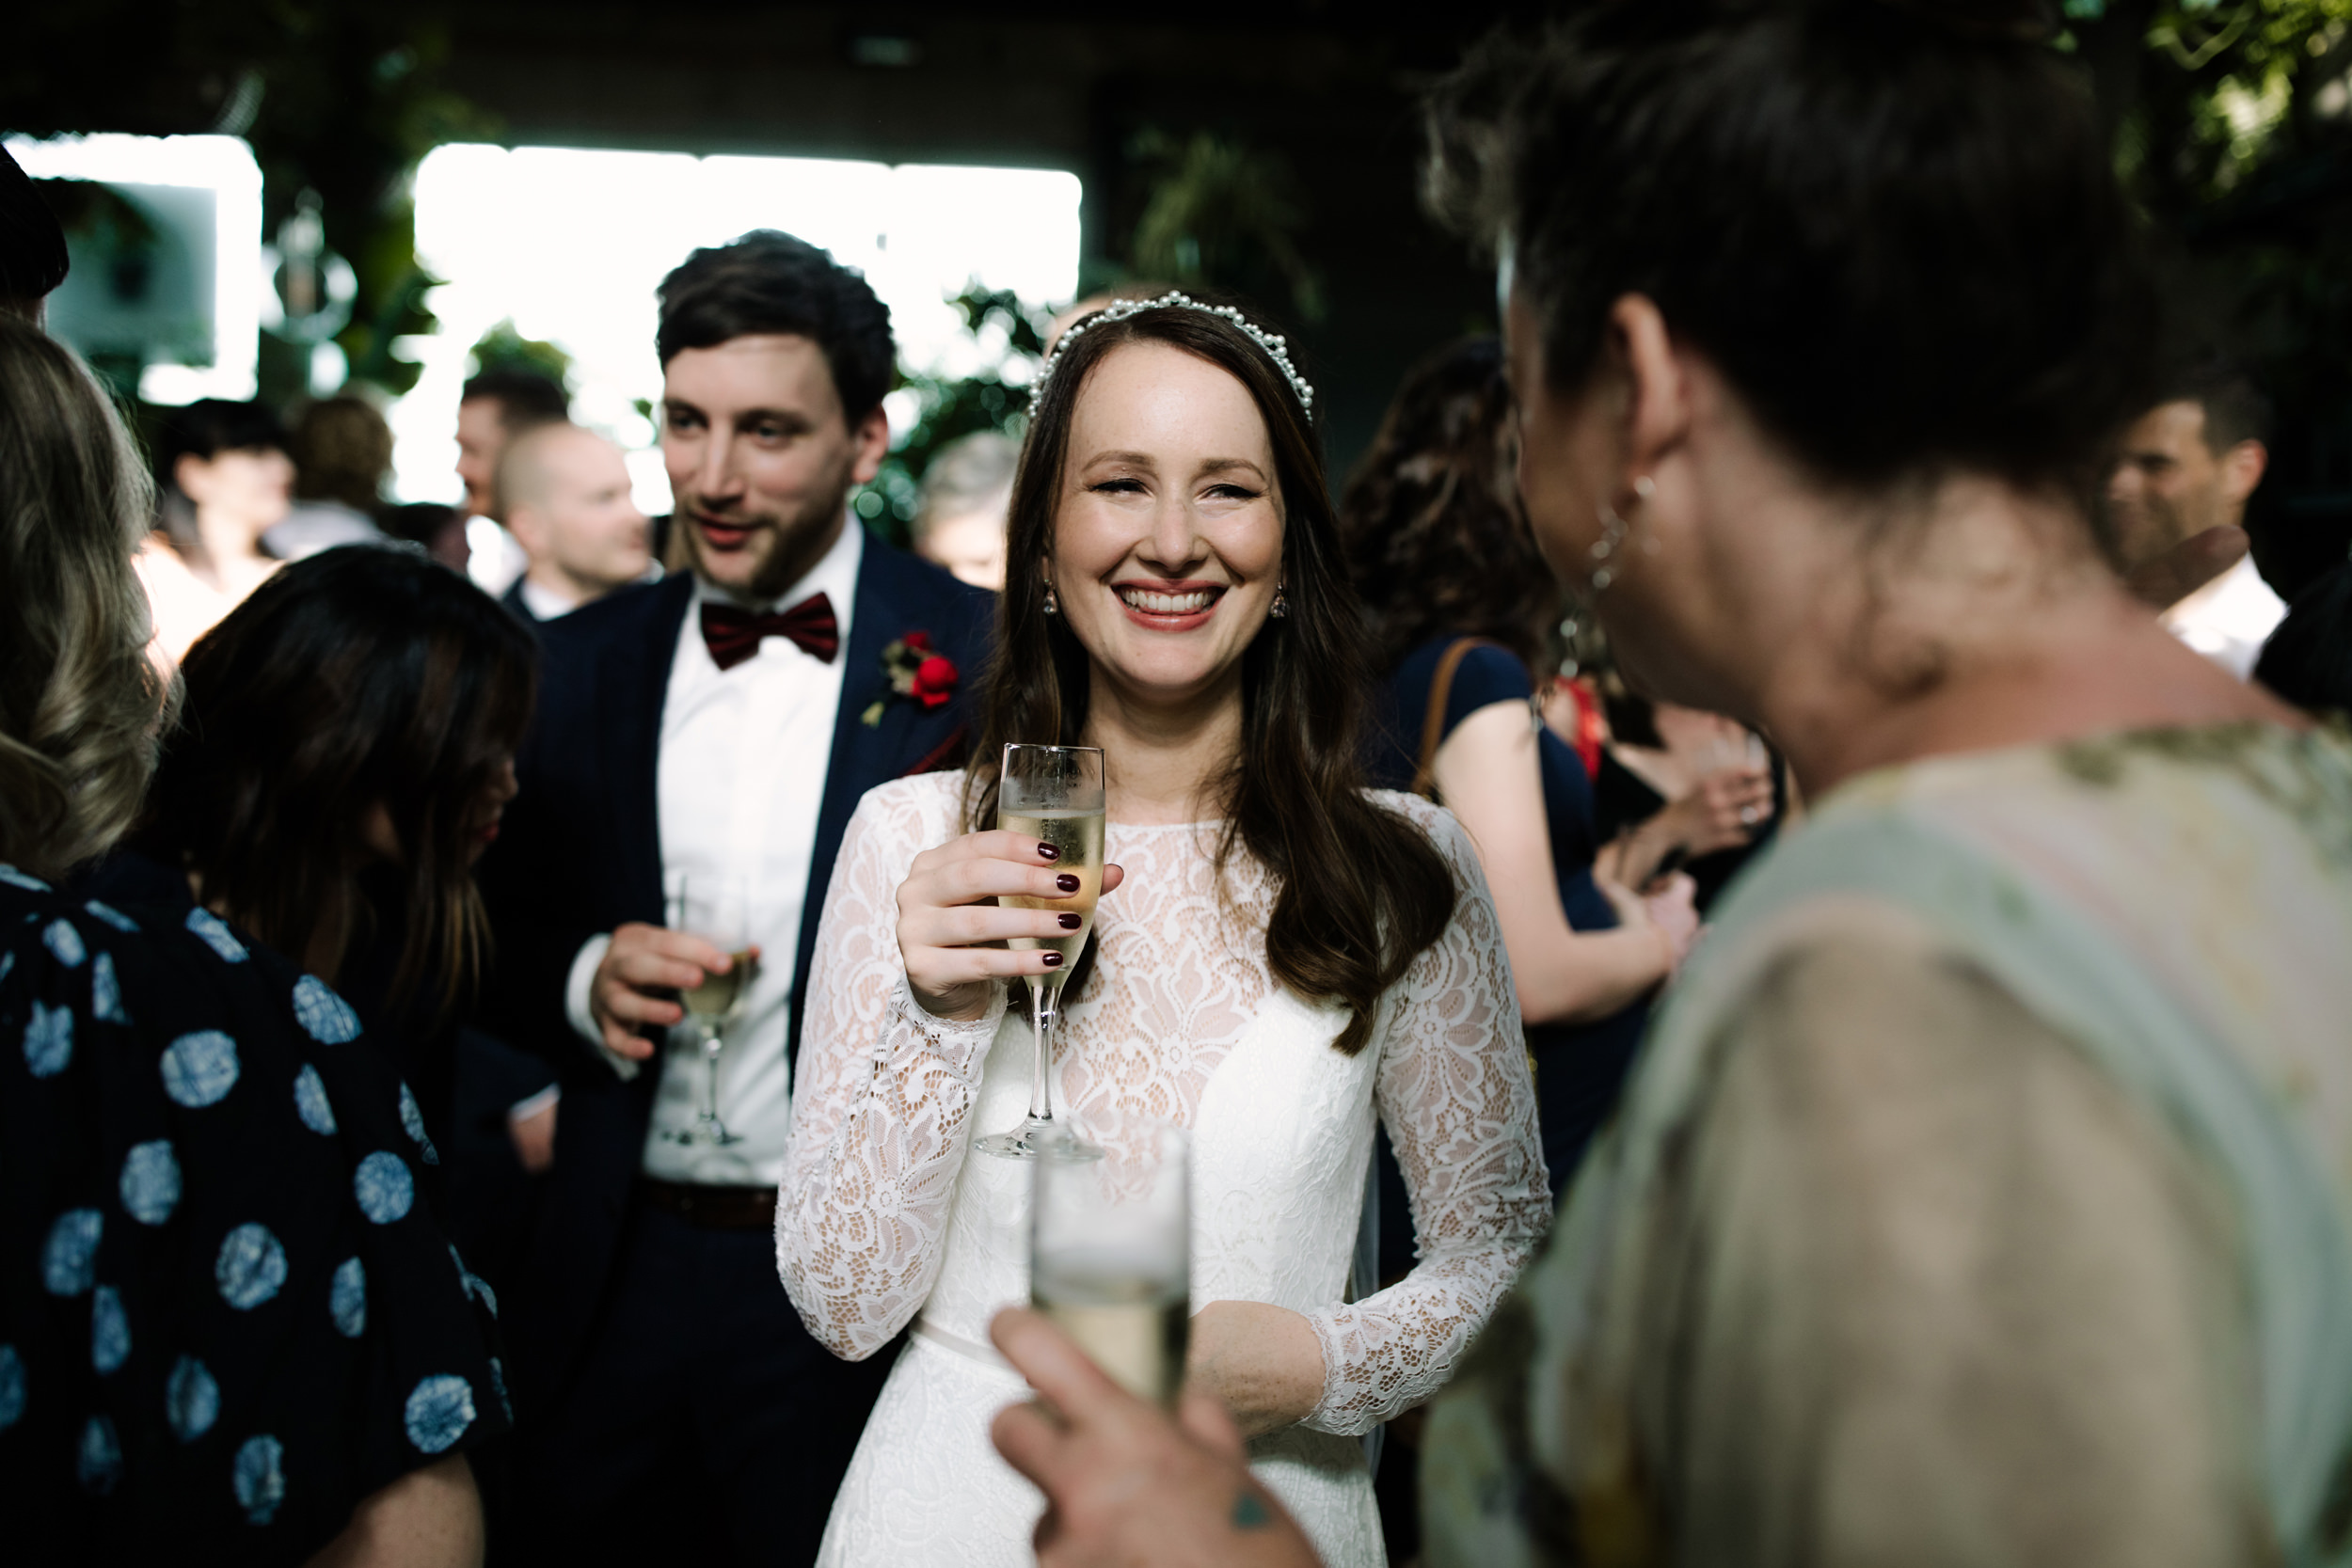 I_Got_You_Babe_Weddings_Emily_Matt_Rupert_Glasshaus_Melbourne0093.JPG